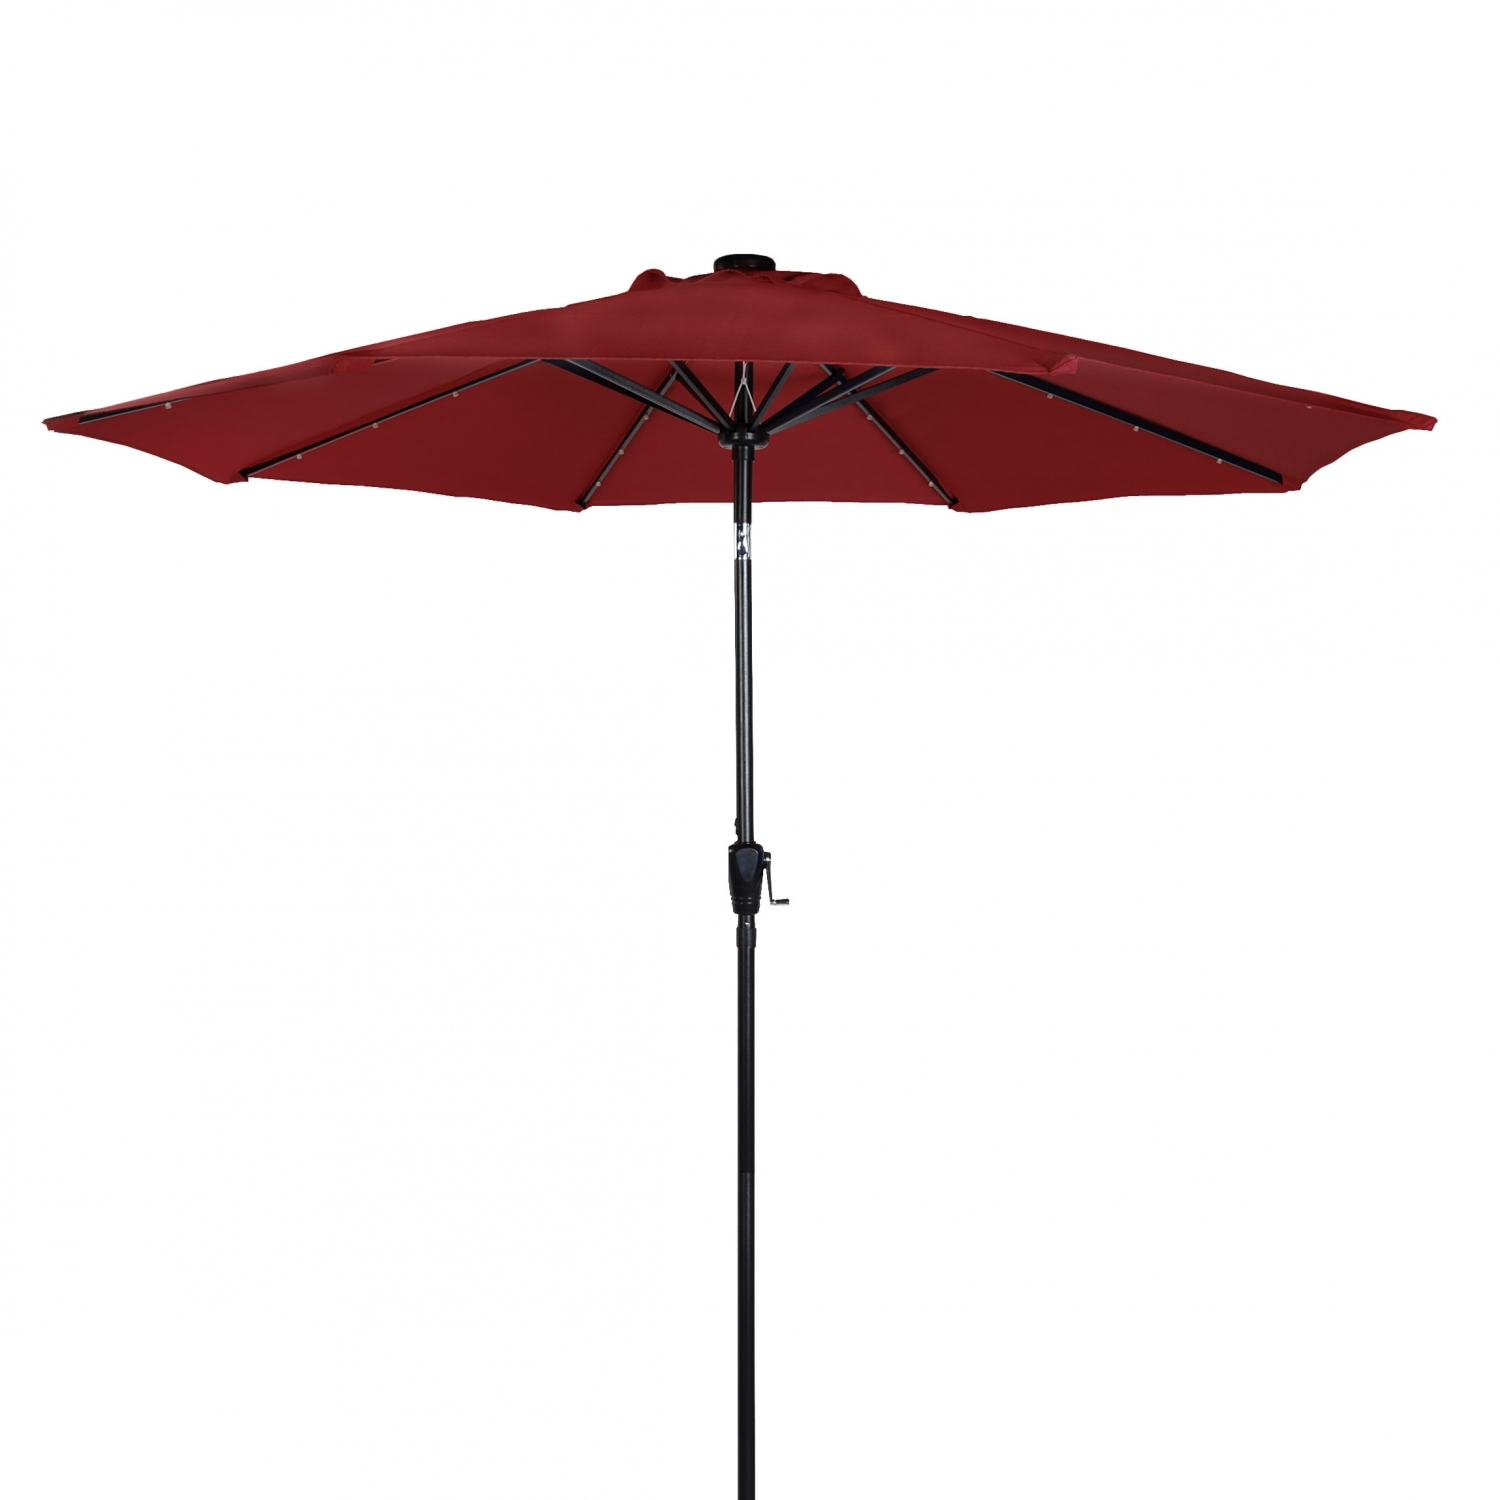 Sunergy 50104395 9' Solar Powered Patio Umbrella W/ 24 LED